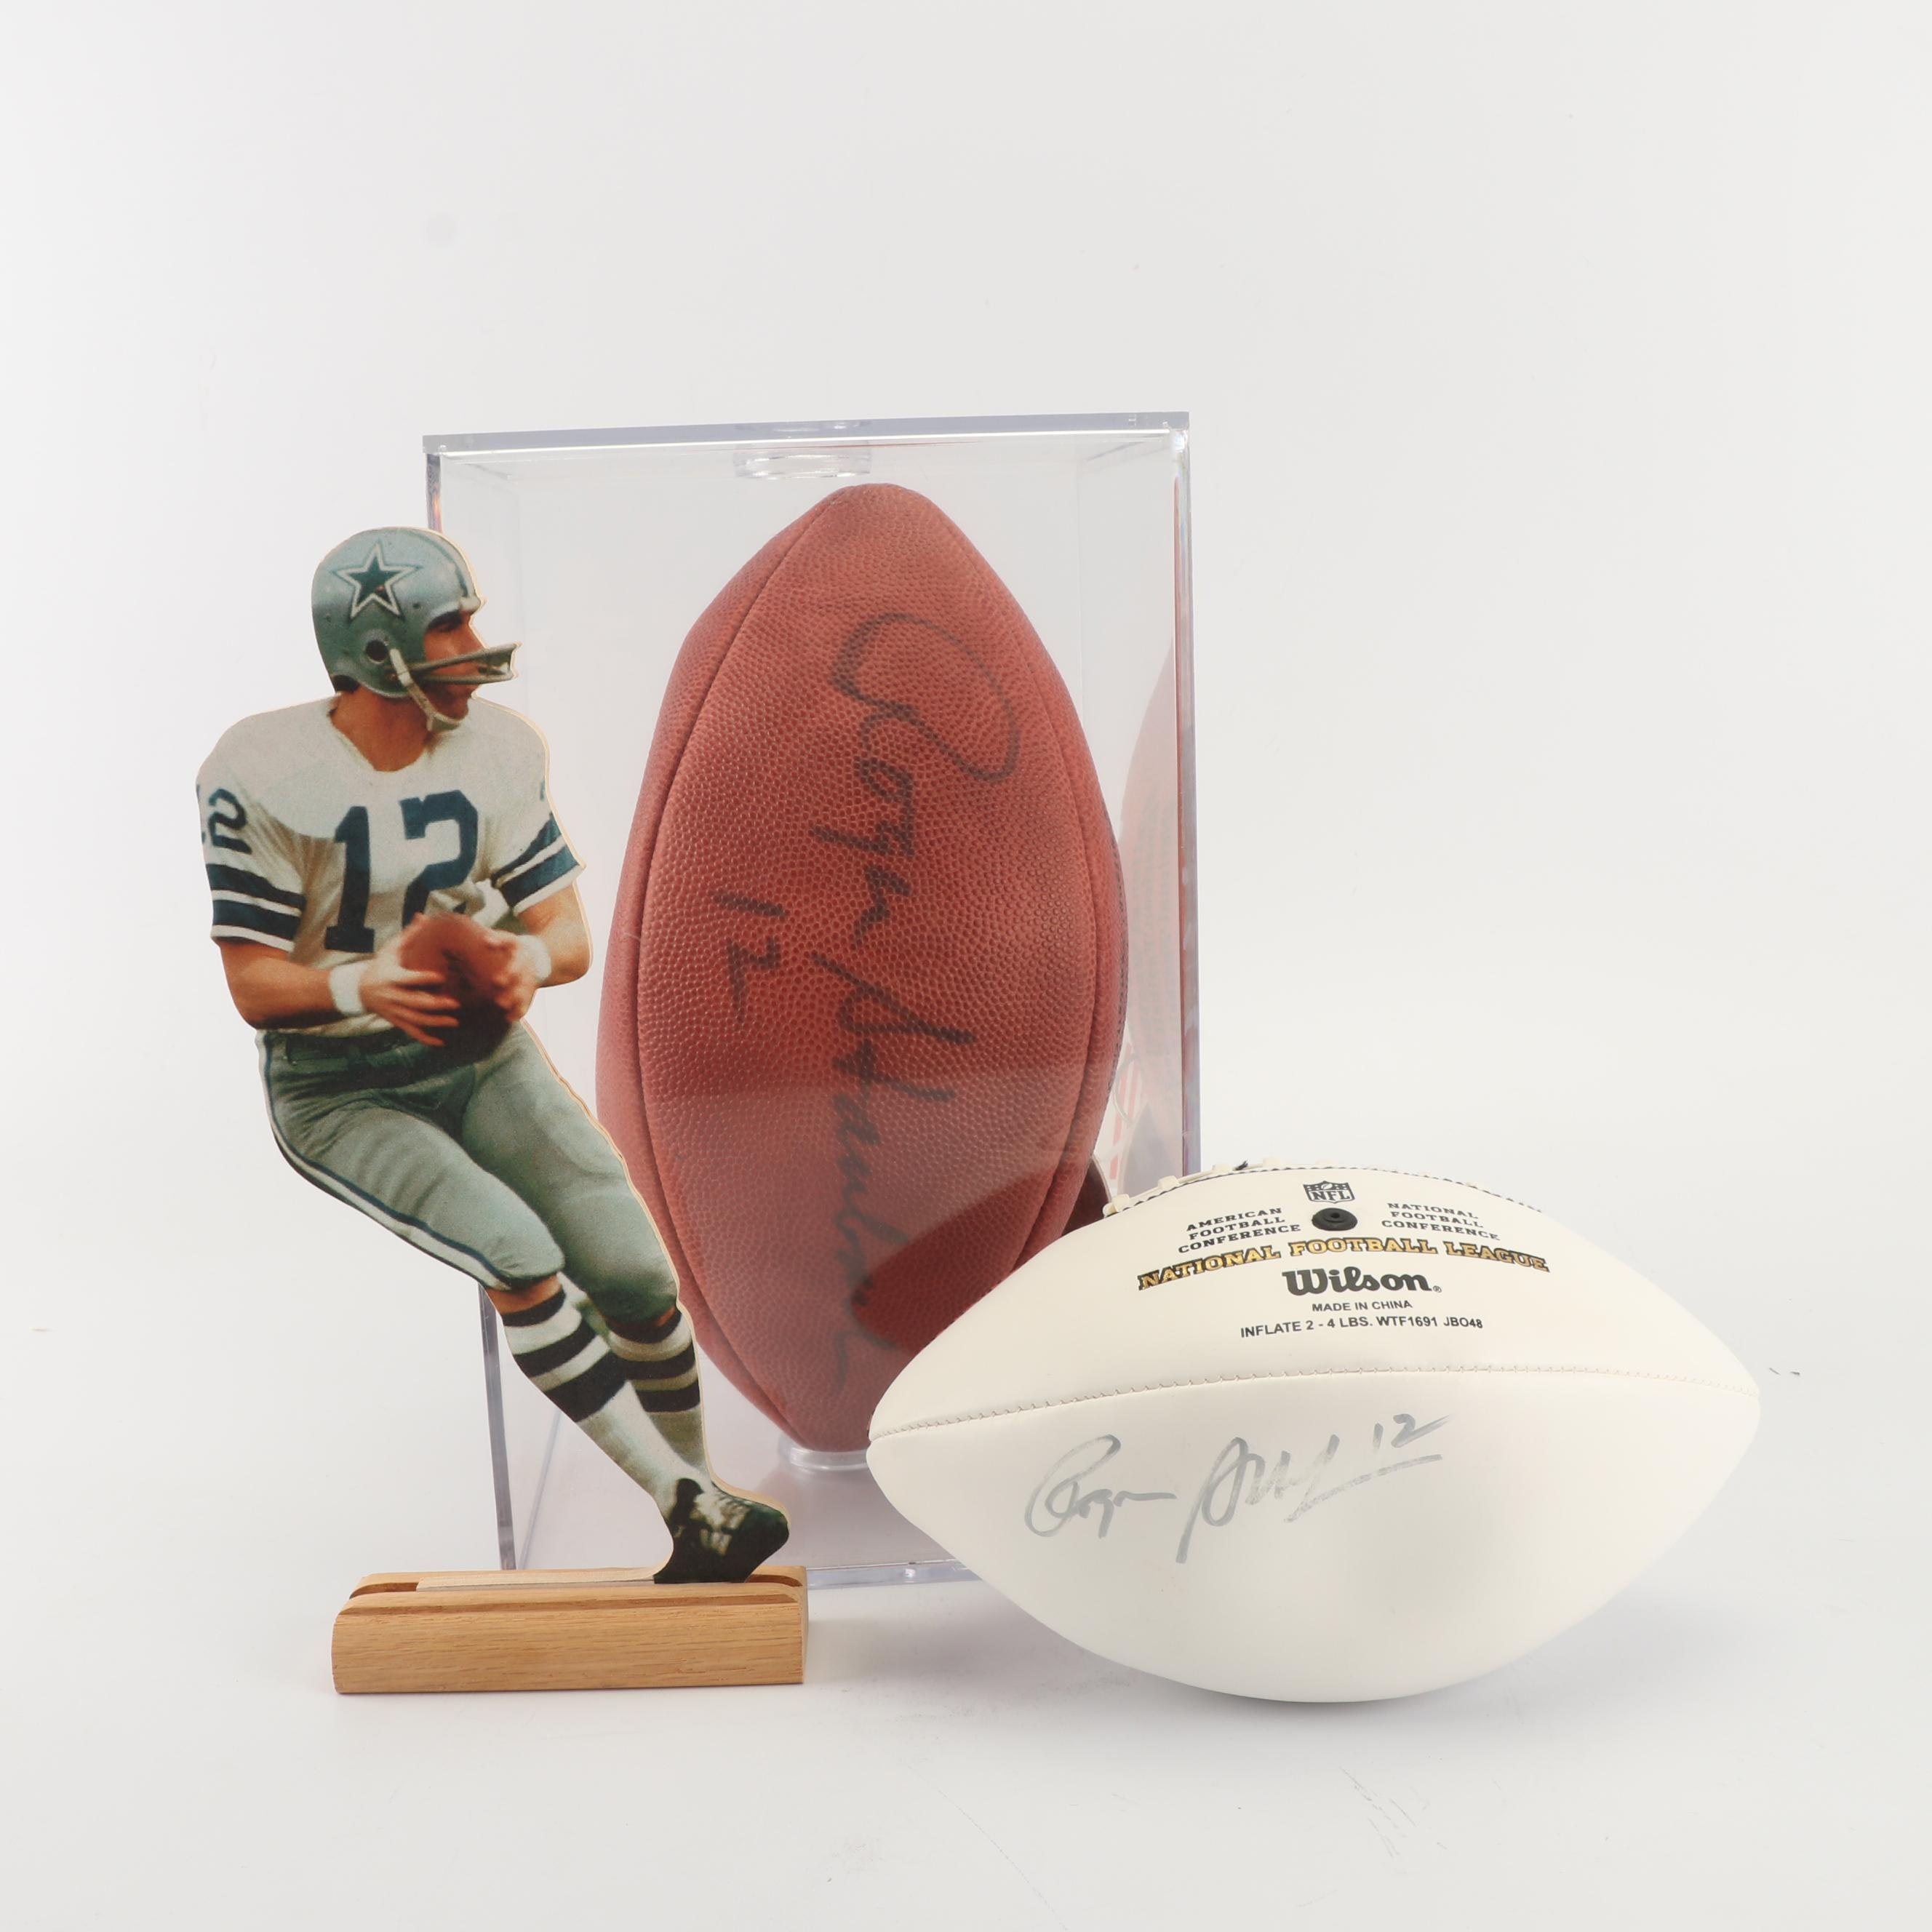 Roger Staubach Autographed Footballs and Wood Cutout